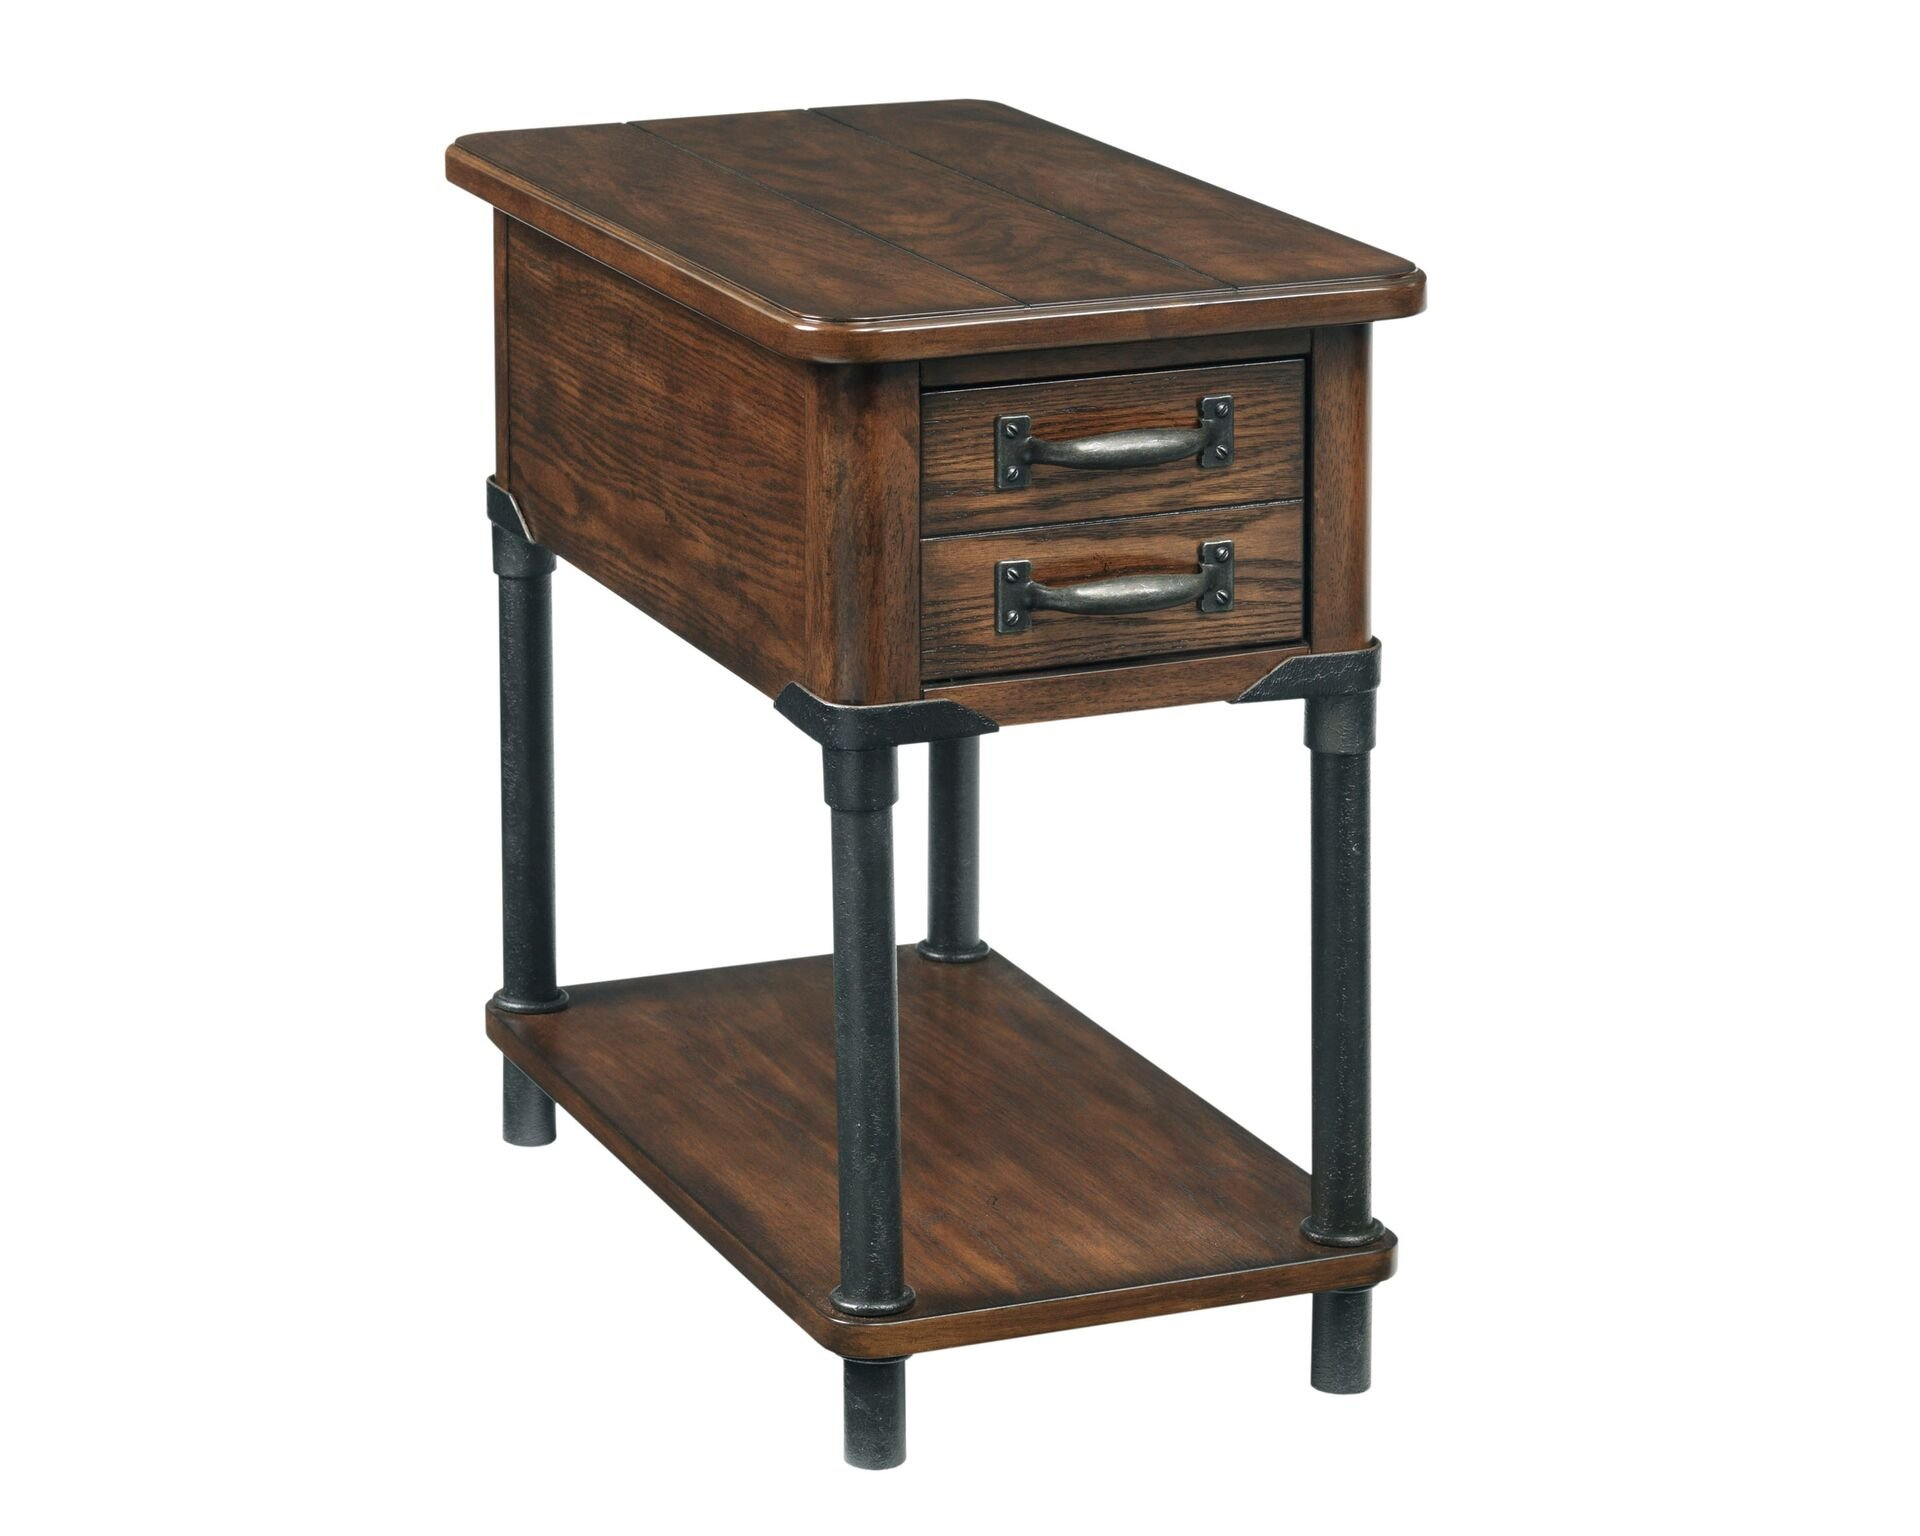 Broyhill Saluda Accent Table - It has one drawer Transitional - warm oak Finish with metal accents The product made in Vietnam - living-room-furniture, living-room, end-tables - 71XHXGZUQbL -